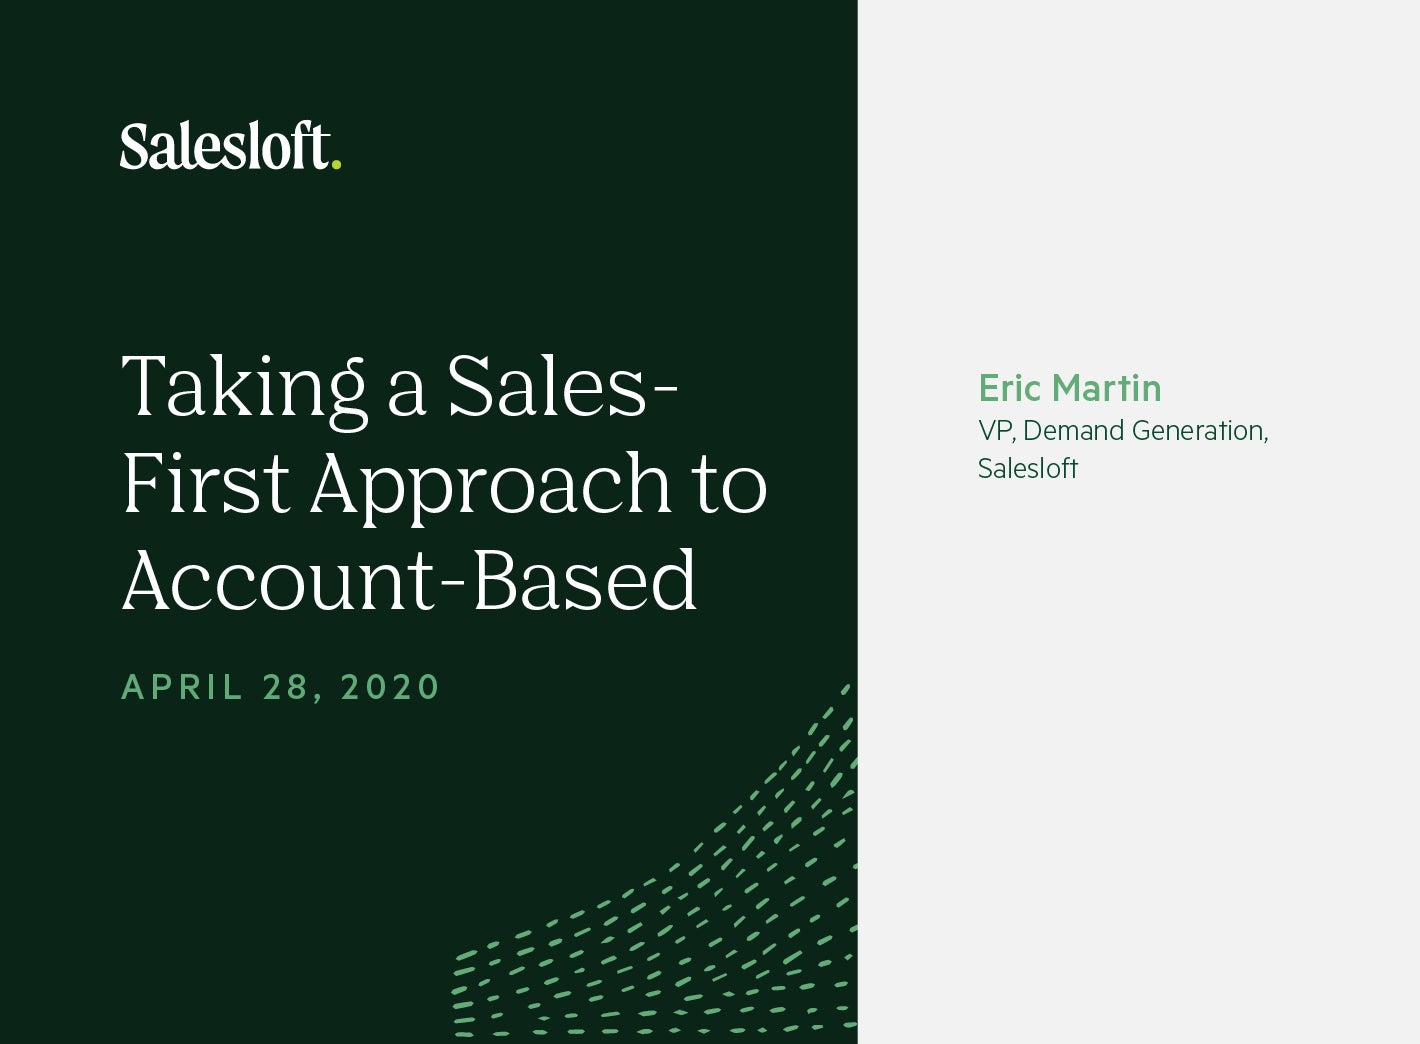 Taking a Sales-First Approach to Account-Based